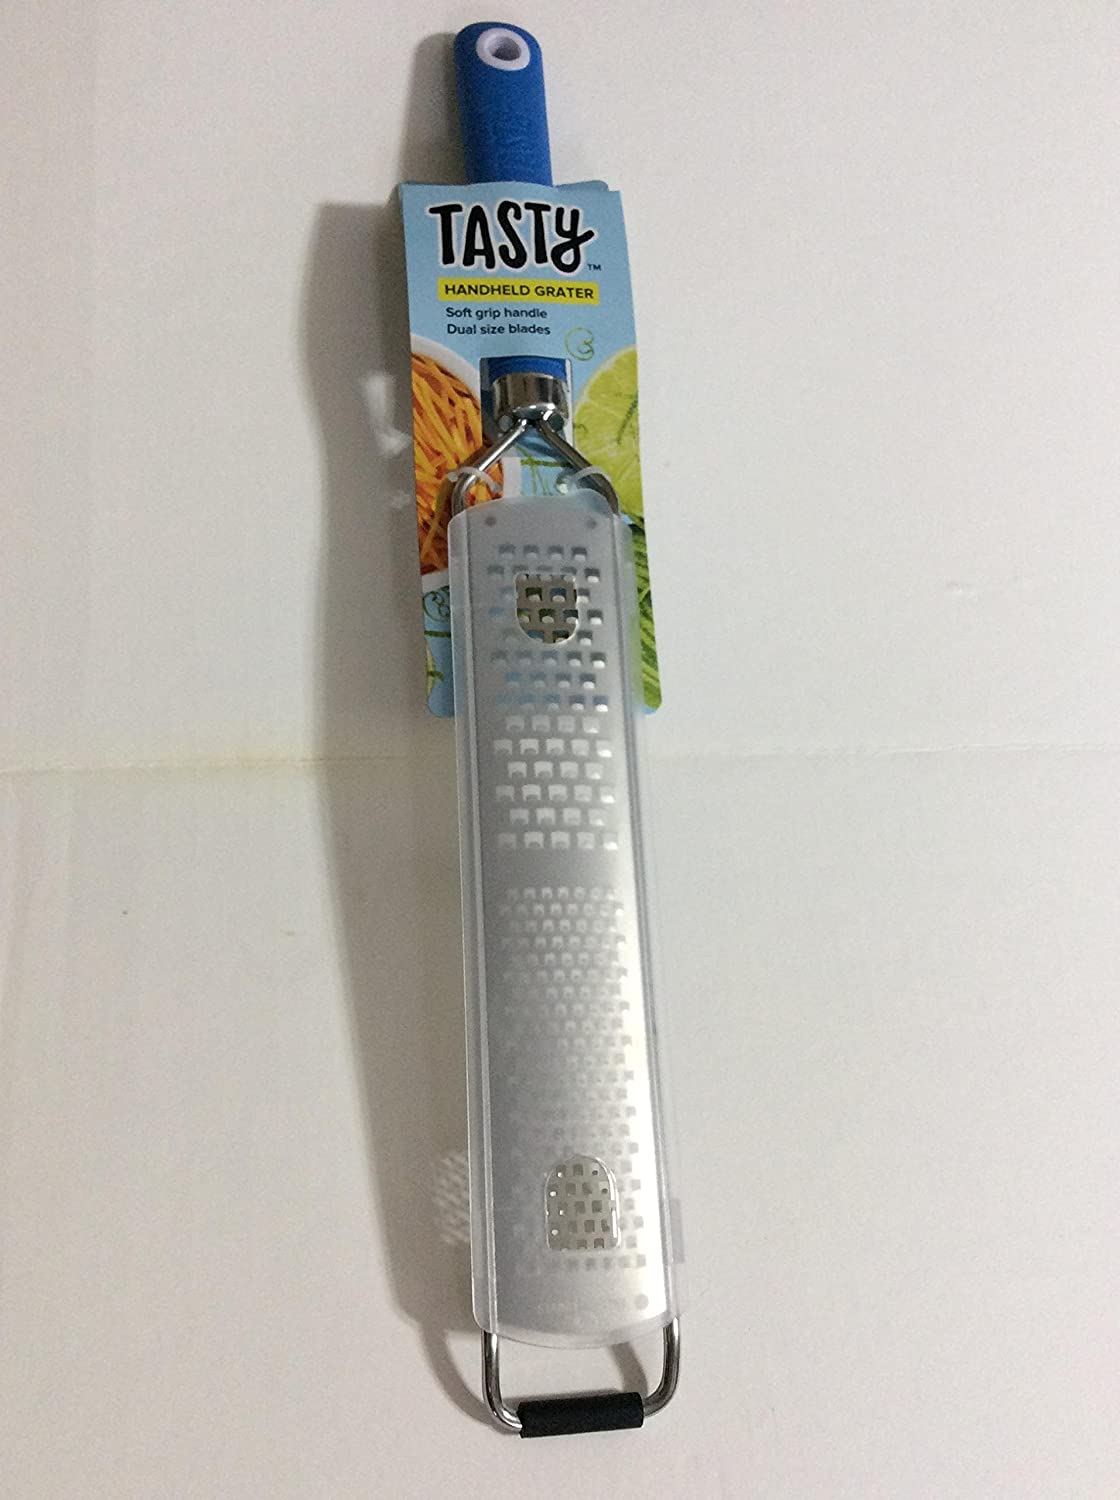 Royal Blue Tasty Handheld Graterwith Soft Grip Handle